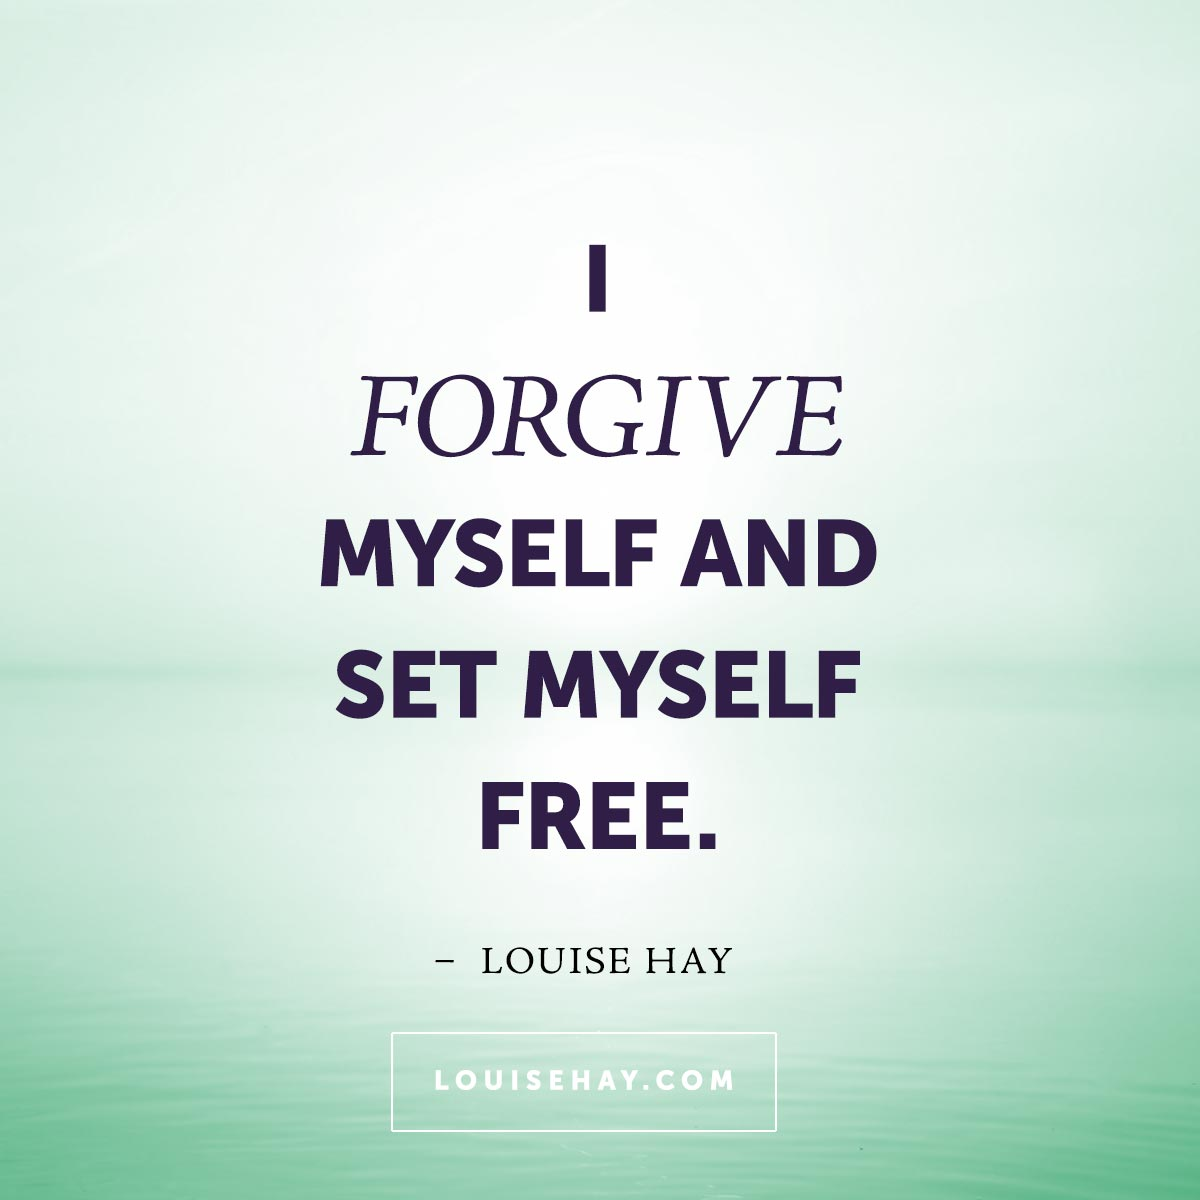 Forgive Yourself Quotes: Daily Affirmations & Beautiful Quotes From Louise Hay